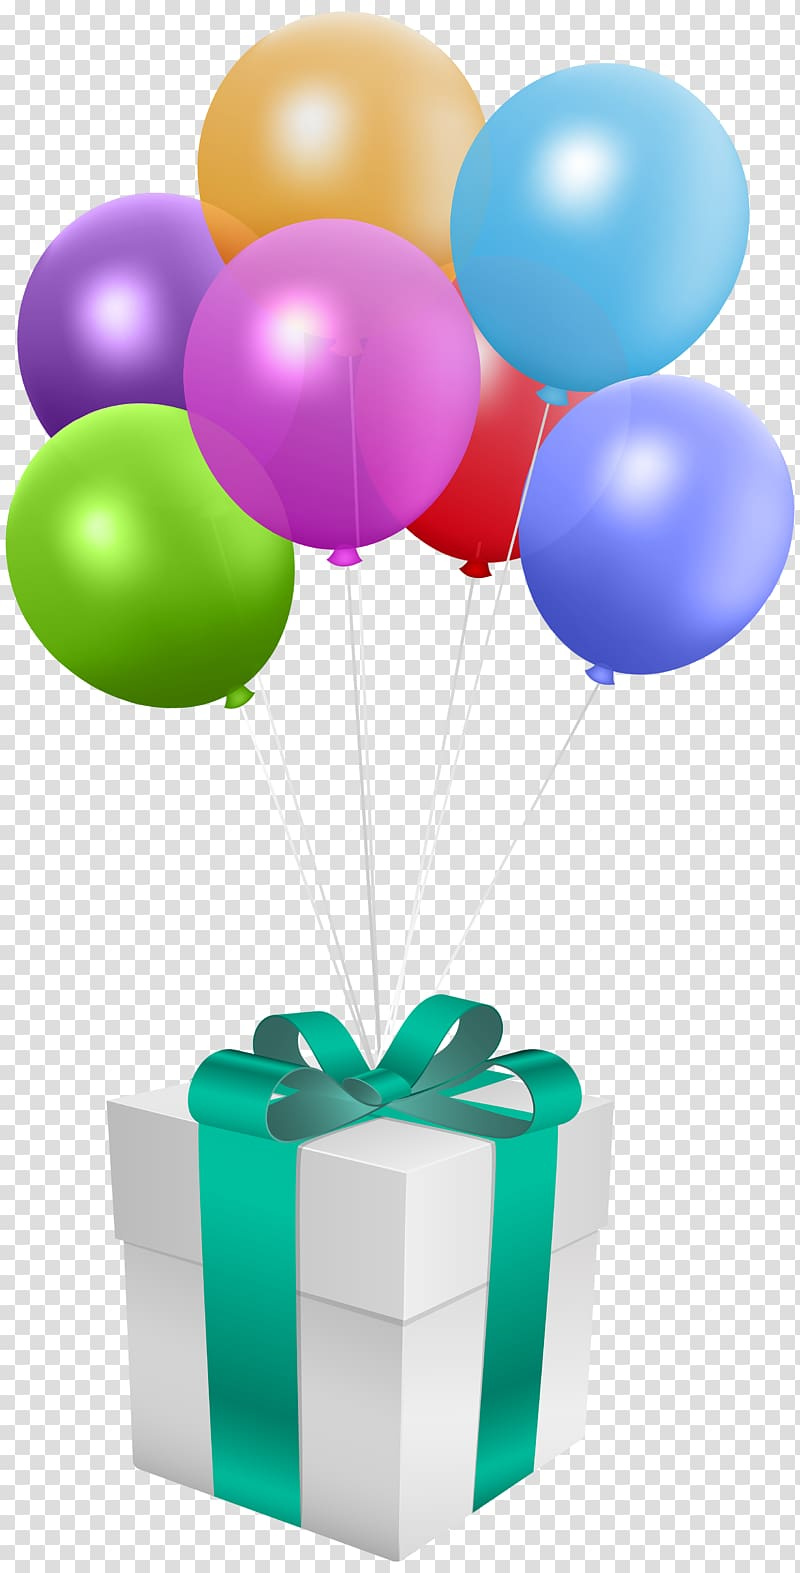 Balloon gift box, Balloon Gift Birthday , Gift with Balloons.